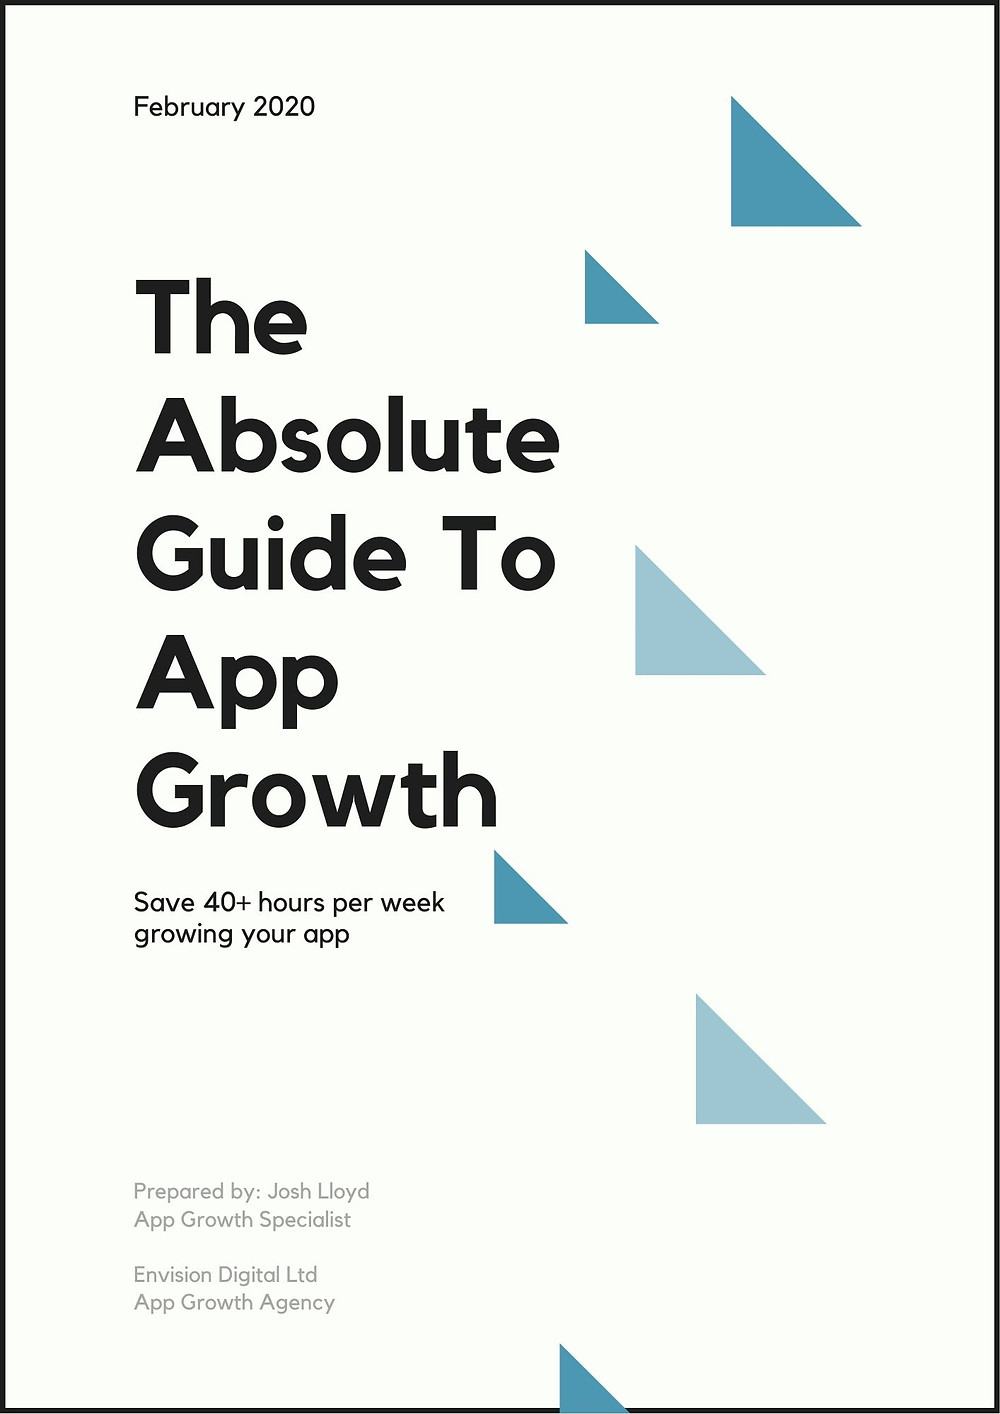 The Absolute Guide To App Growth